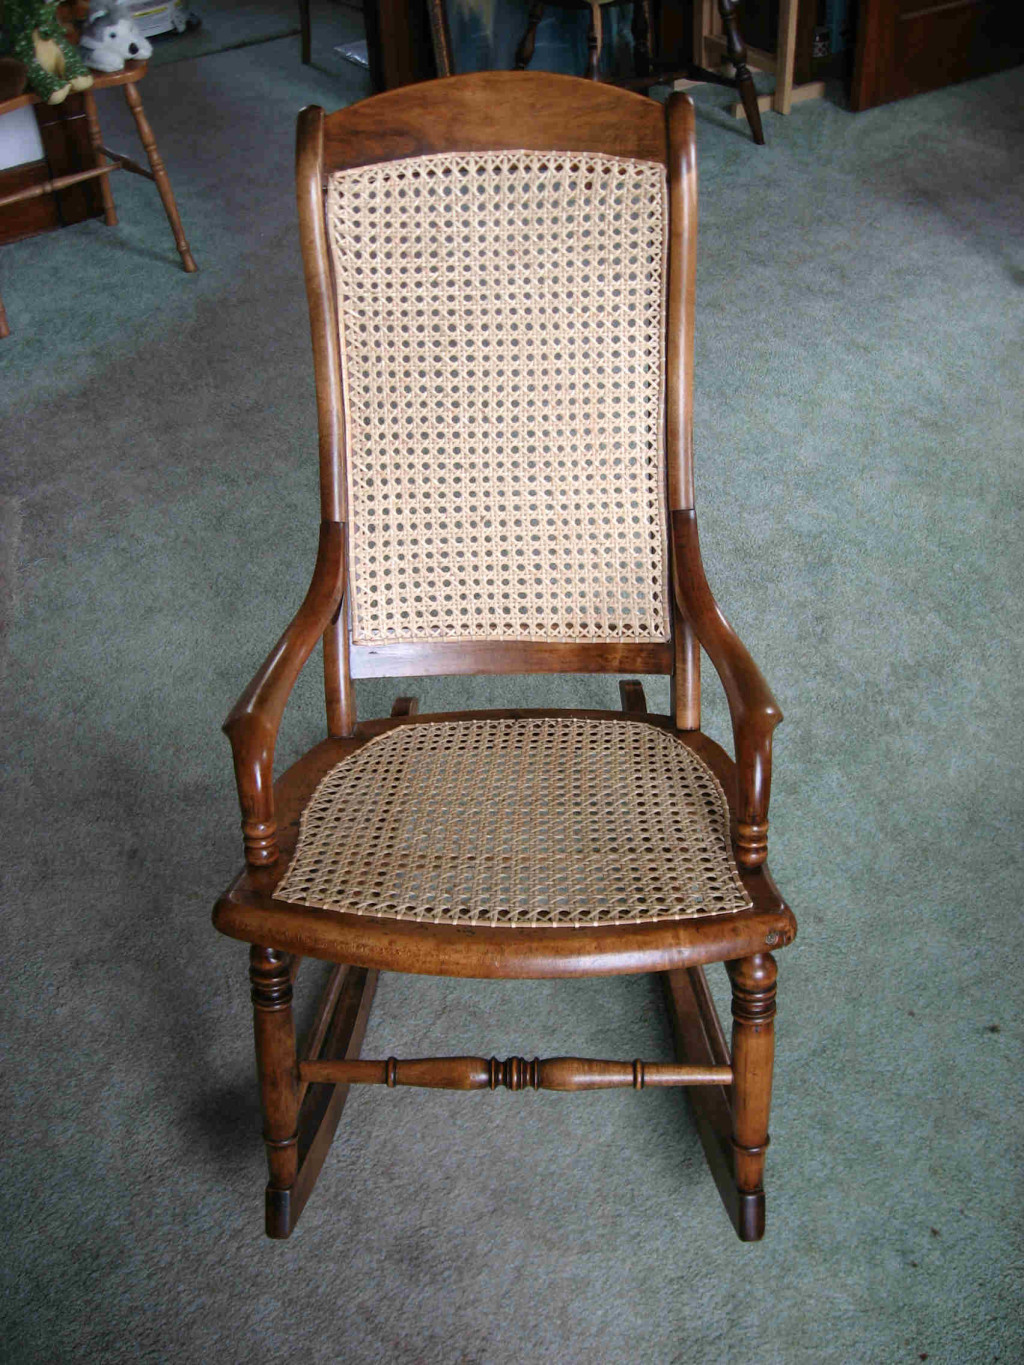 Superb img of Chair Caning Experts in Ohio Rick's Wood & Wire Pemberville OH with #6C4026 color and 1024x1365 pixels